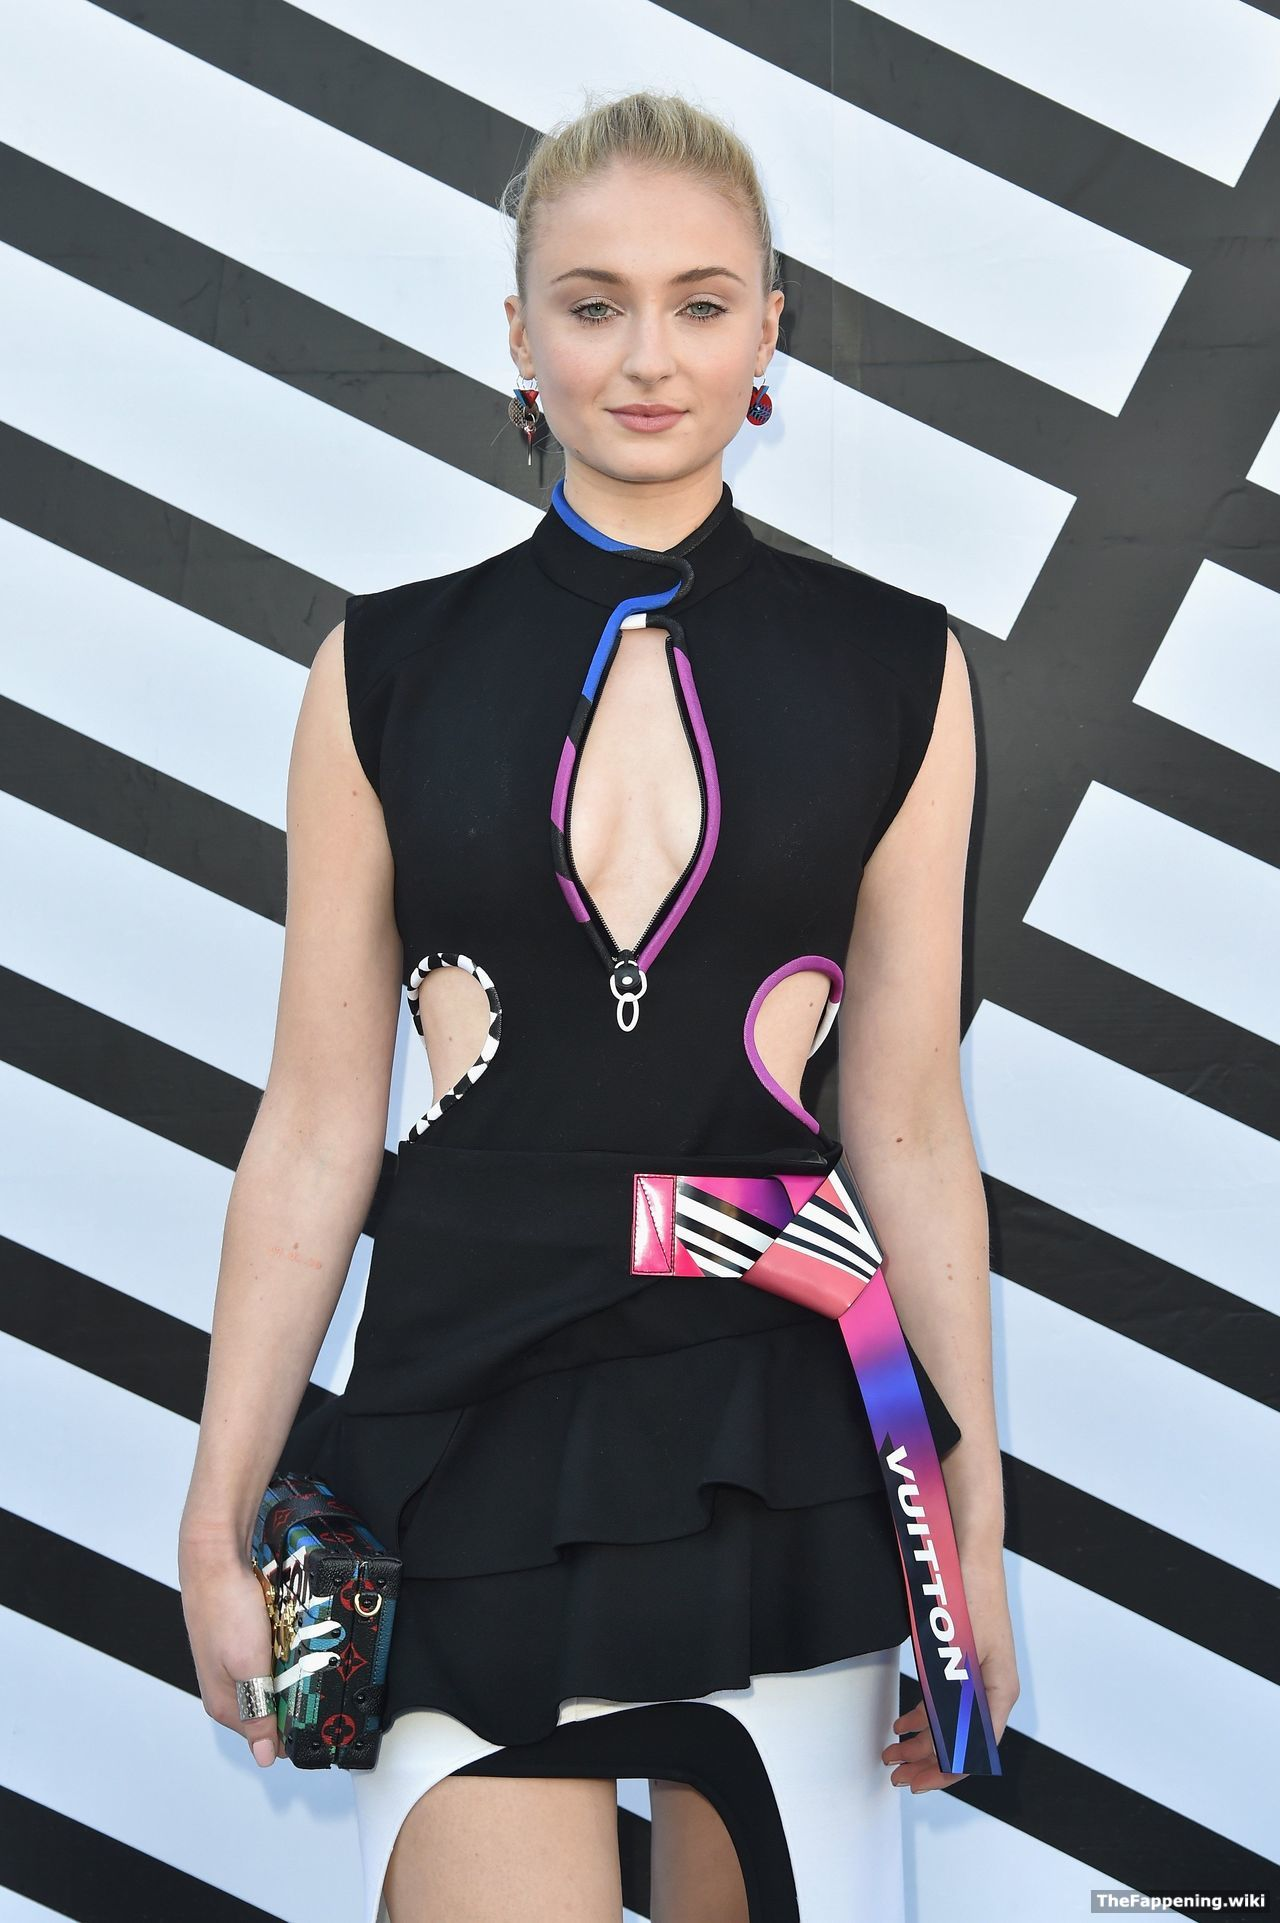 Sophie Turner Nude Pics & Vids - The Fappening